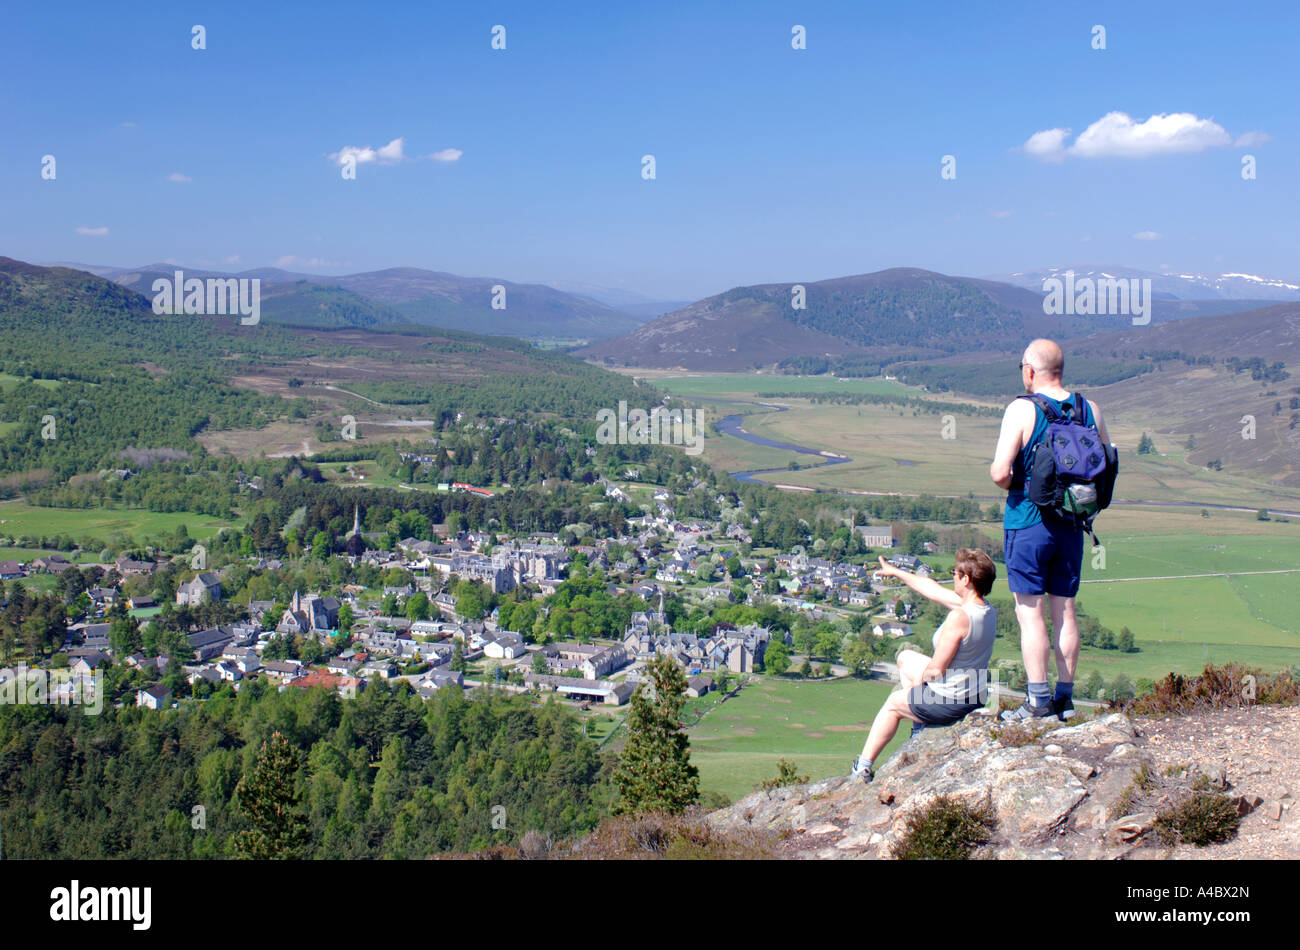 Visitors enjoying the view from the Lion's Crag overlooking Braemar Town.  XPL 4646-437 - Stock Image